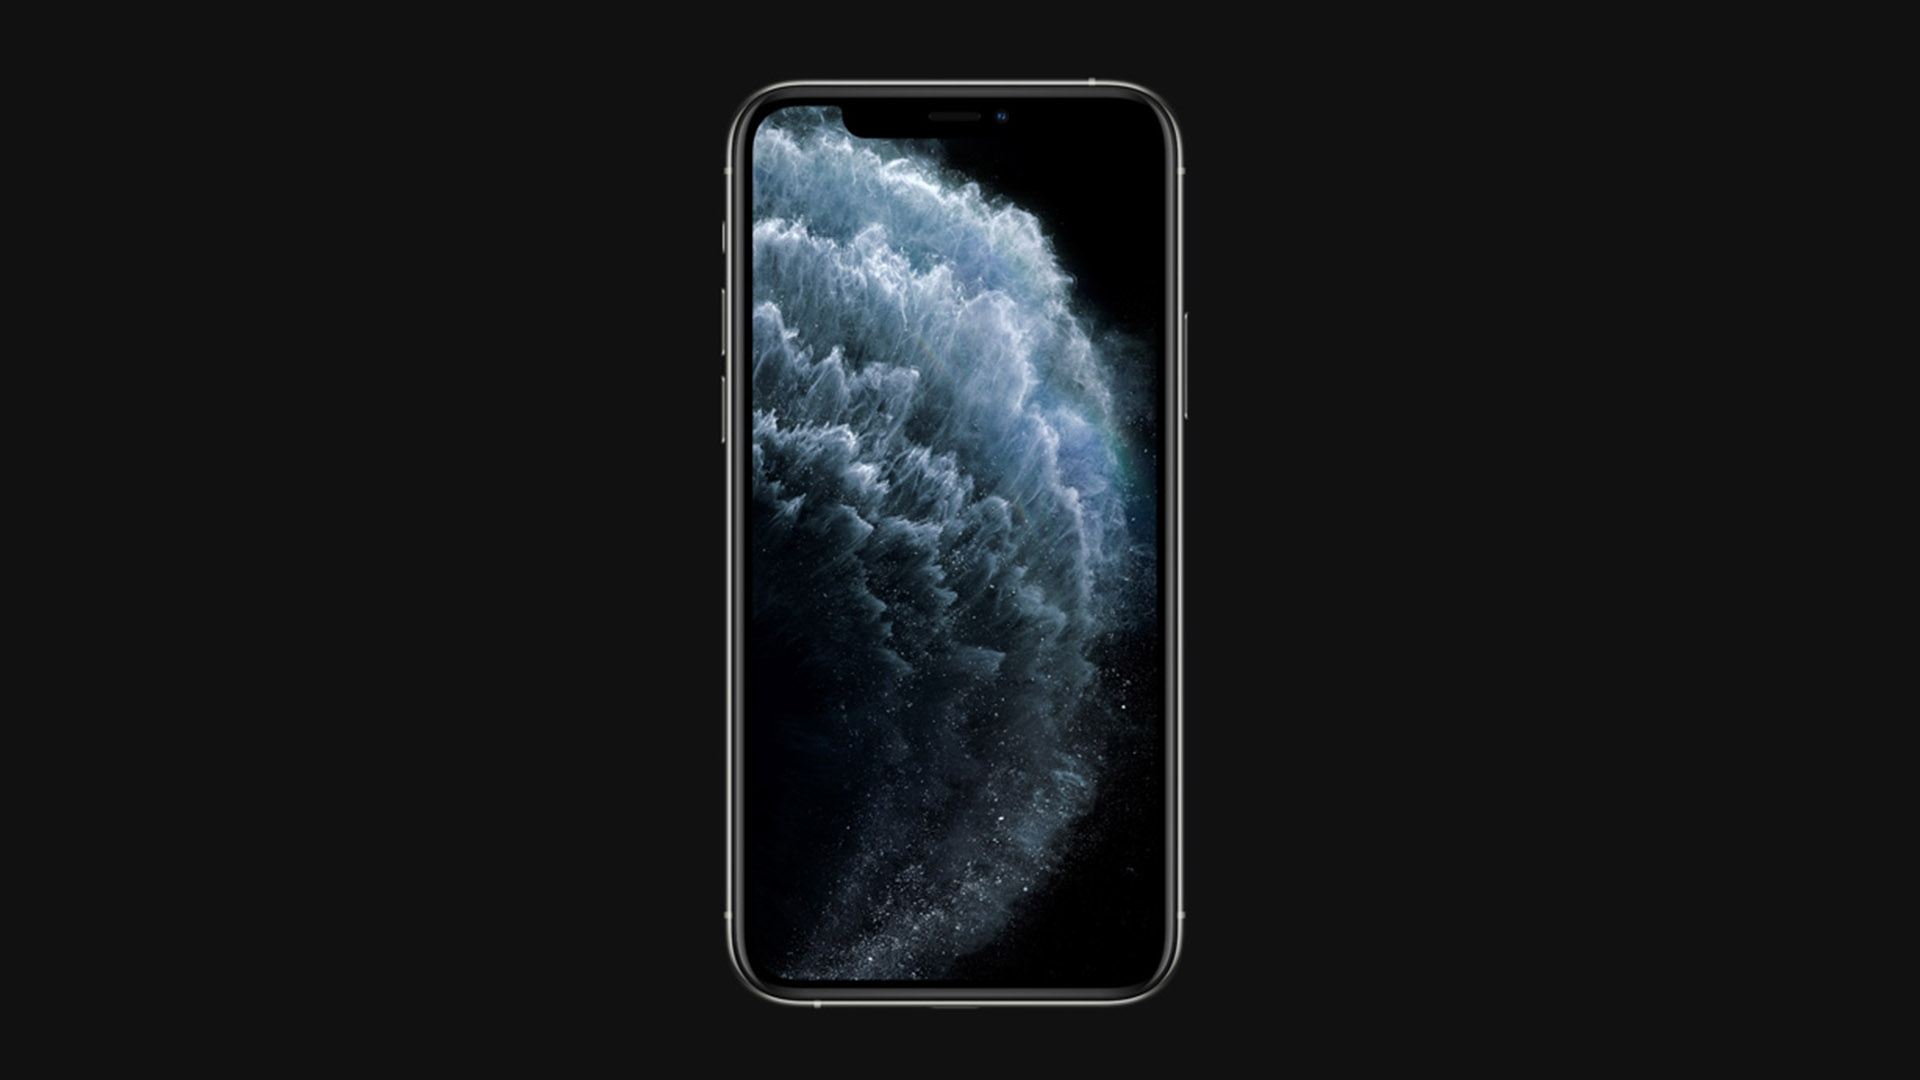 Iphone 11 Pro Max Display Receives A Award From Known Testing Firm